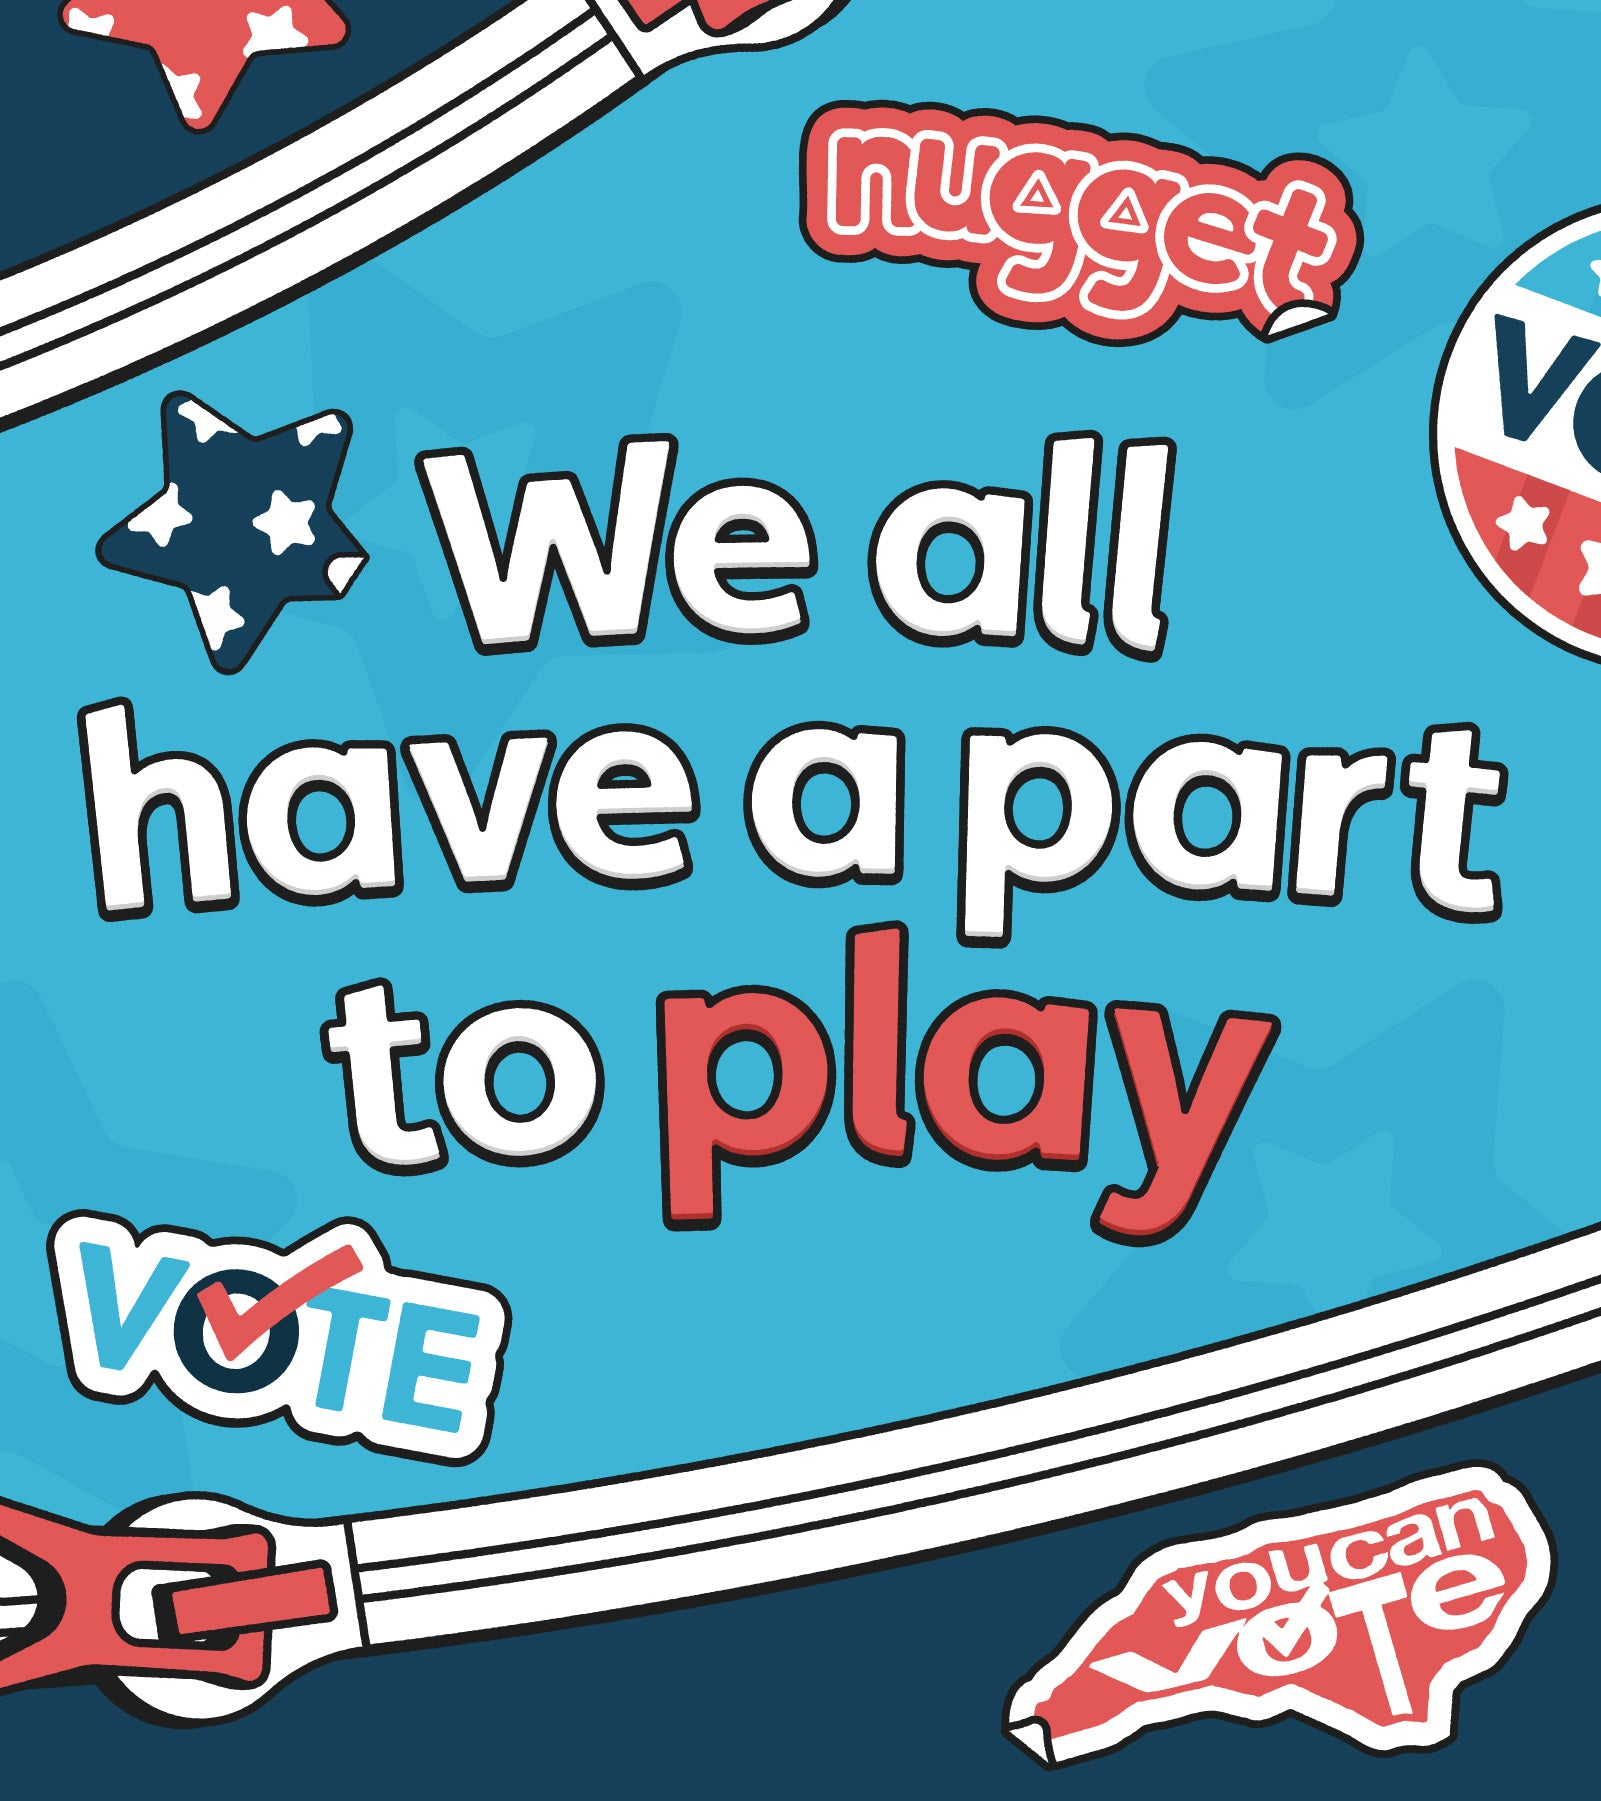 We all have a part to play! Nugget logo, You Can vote logo